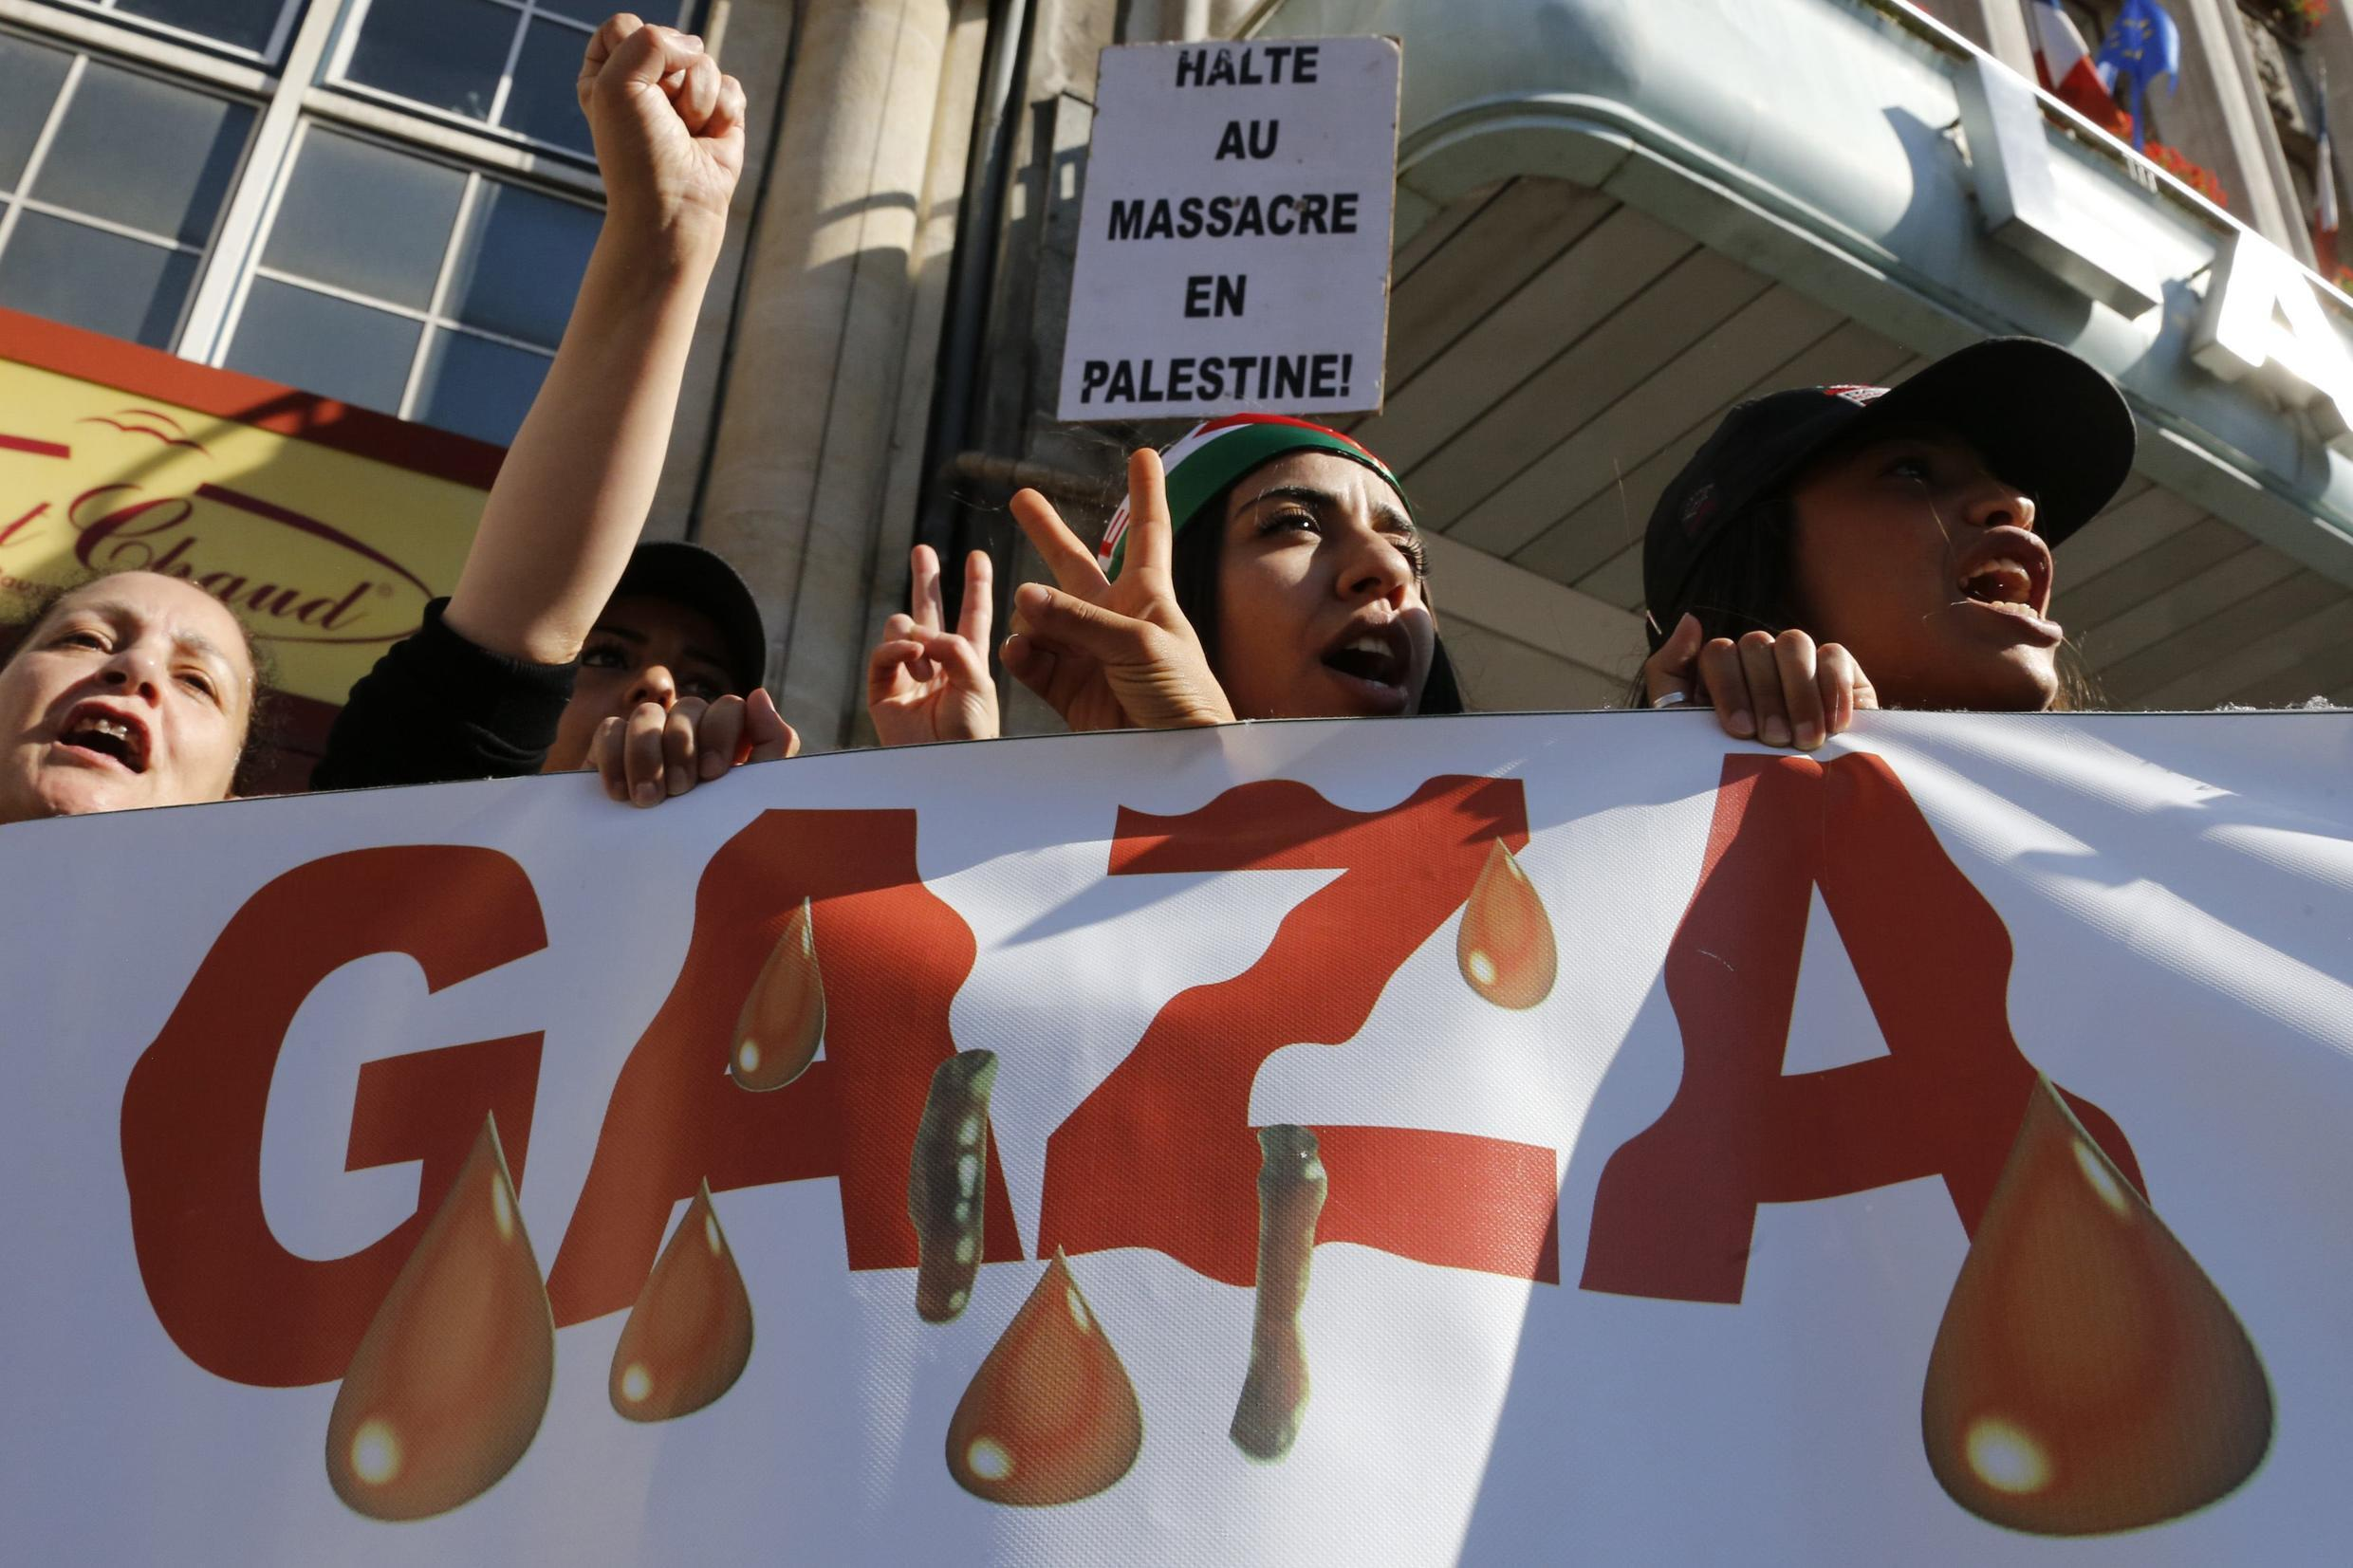 A demonstation against Israel's Gaza offensive in Lille, northern France, on Monday